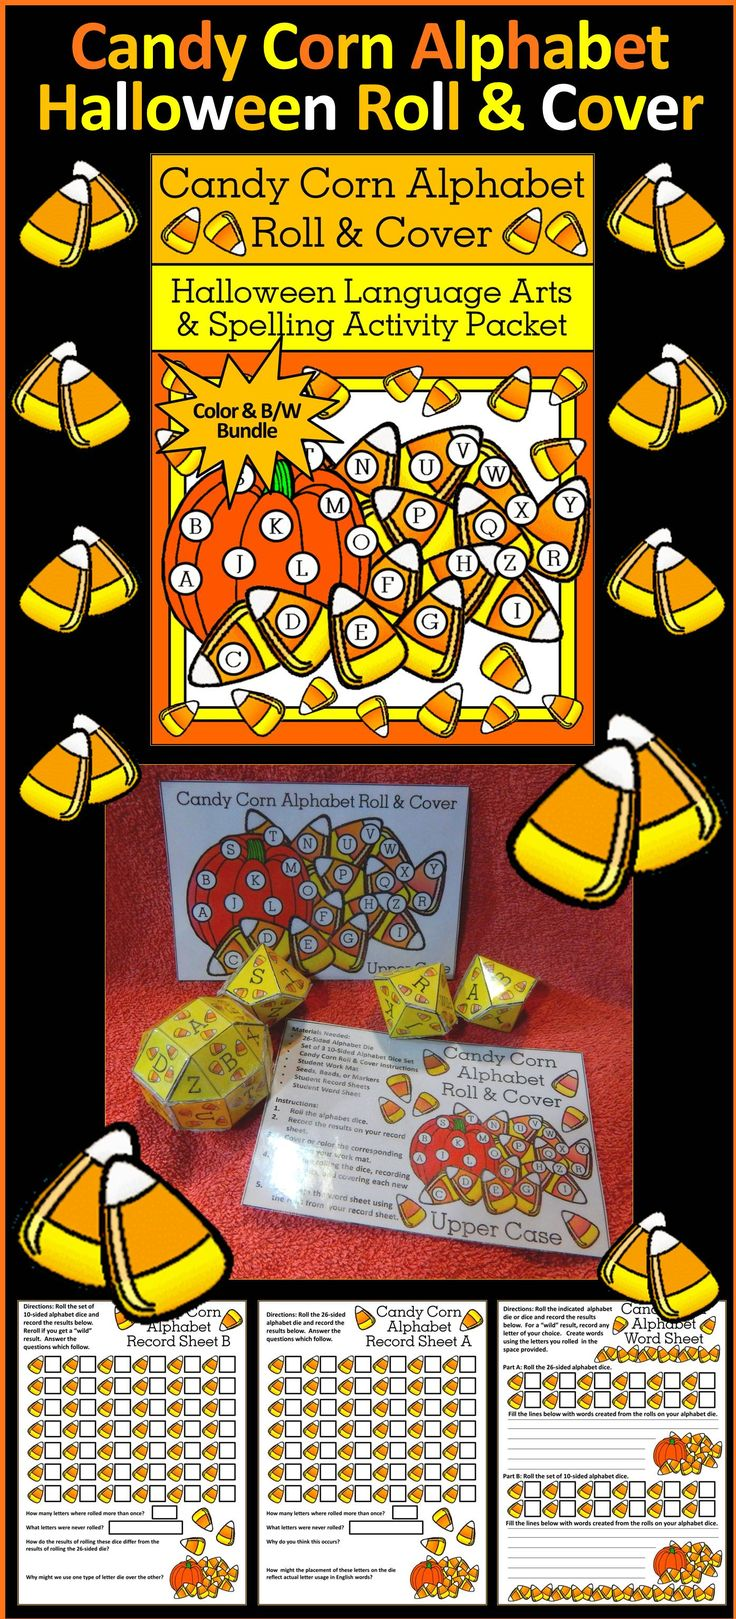 Candy Corn Alphabet Roll & Cover Halloween Activity : This Halloween language arts & literacy center reinforces letter recognition, spelling, and critical thinking on word formation and letter occurrence. Includes upper and lower case templates for a 26-sided alphabet die and a set of 3 10-sided alphabet dice, instruction sheets, work mats, record sheets, and a spelling word sheet activity.   #Halloween #Candy #Corn #Language #Arts #Spelling #Activities #Teacherspayteachers